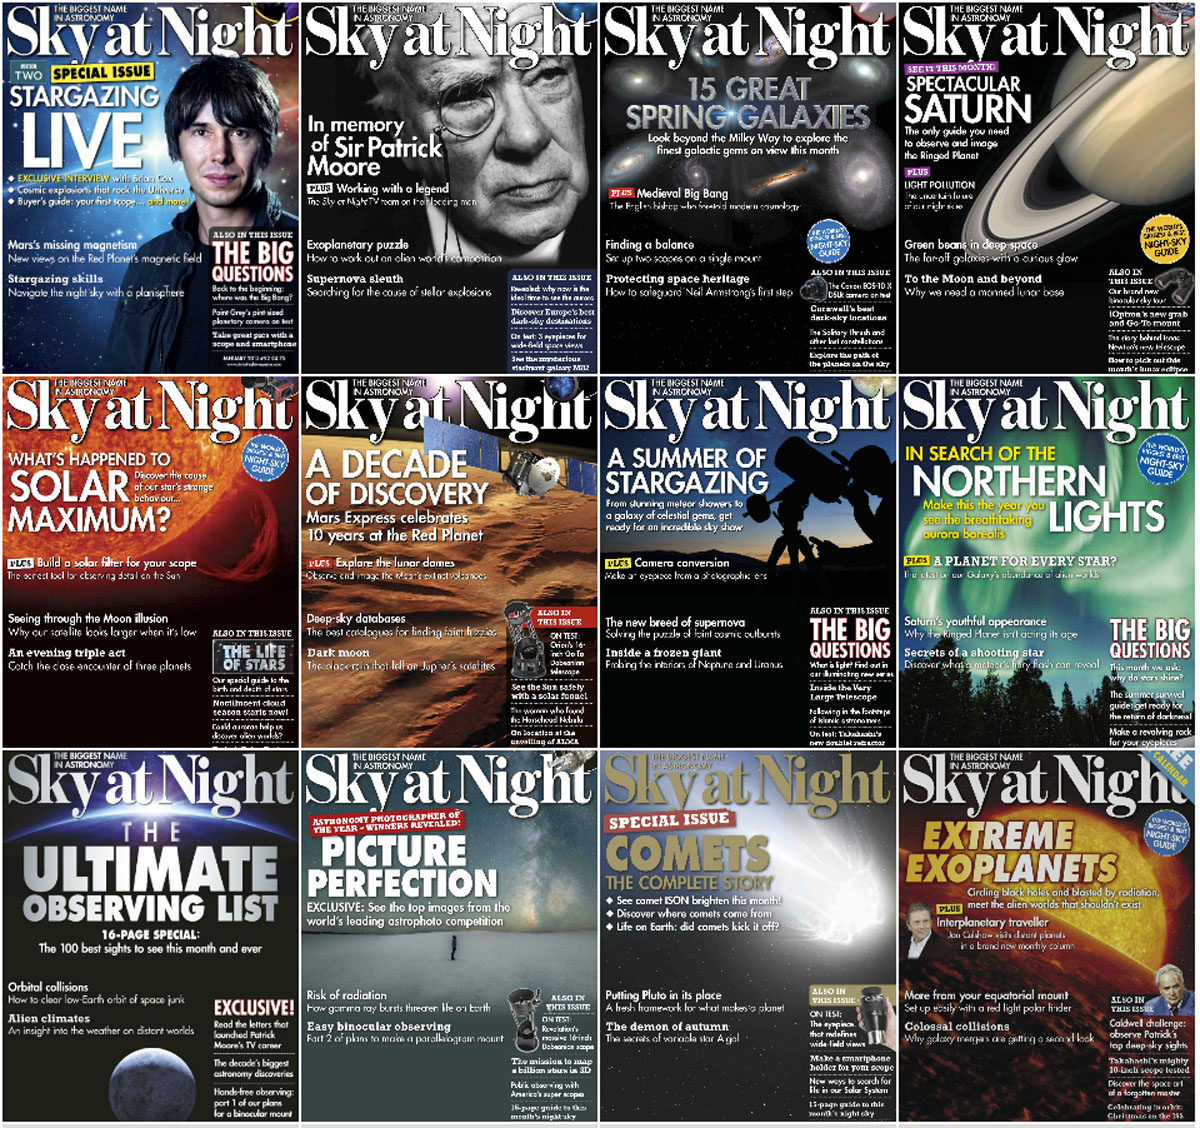 BBC Sky at Night - Full Year 2013 Collection free download